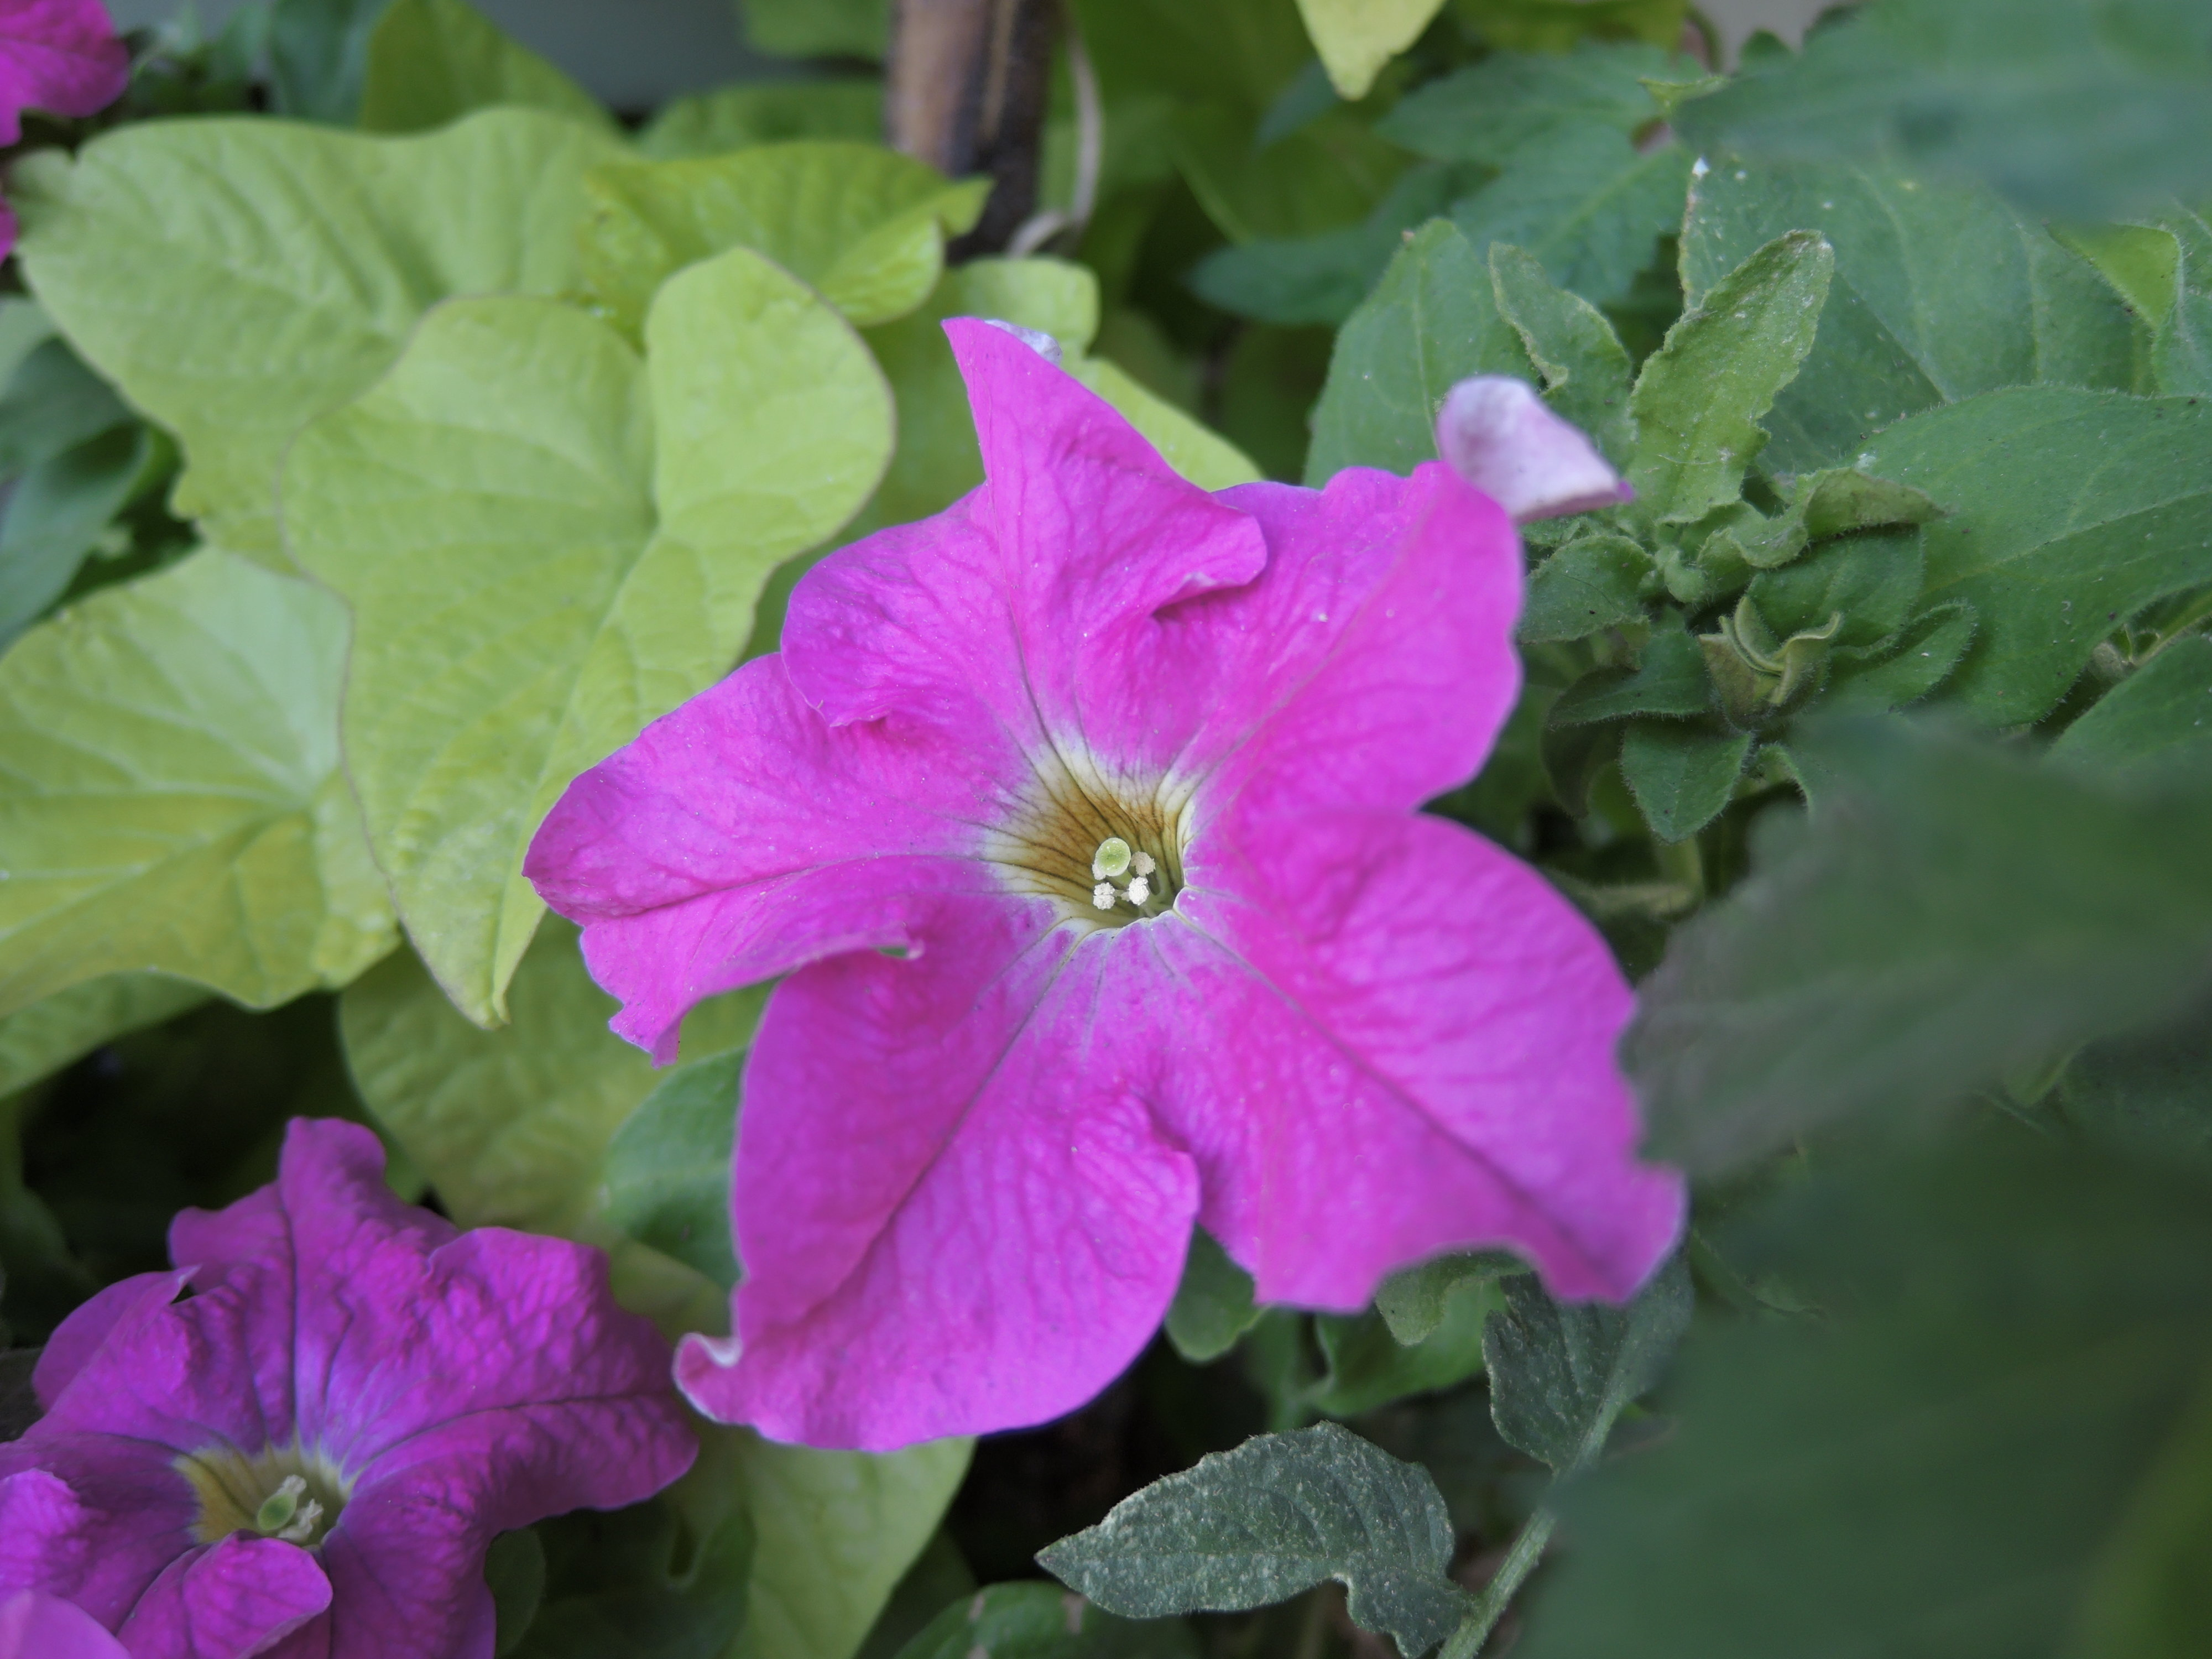 A sample photo of a flower taken by the Nikon Coolpix P340.